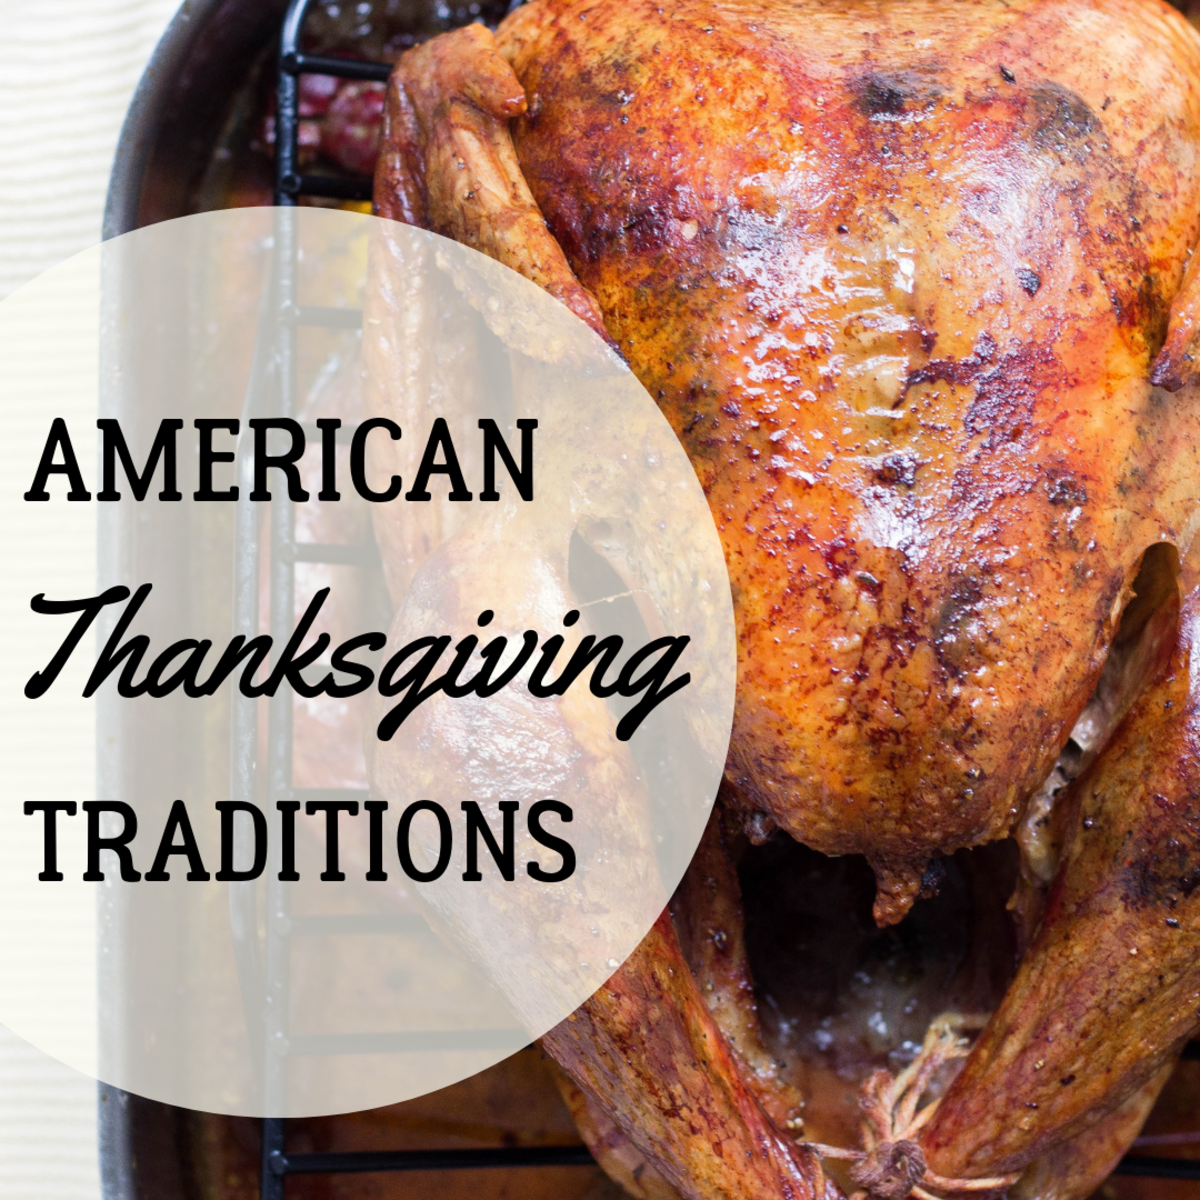 American Thanksgiving Traditions